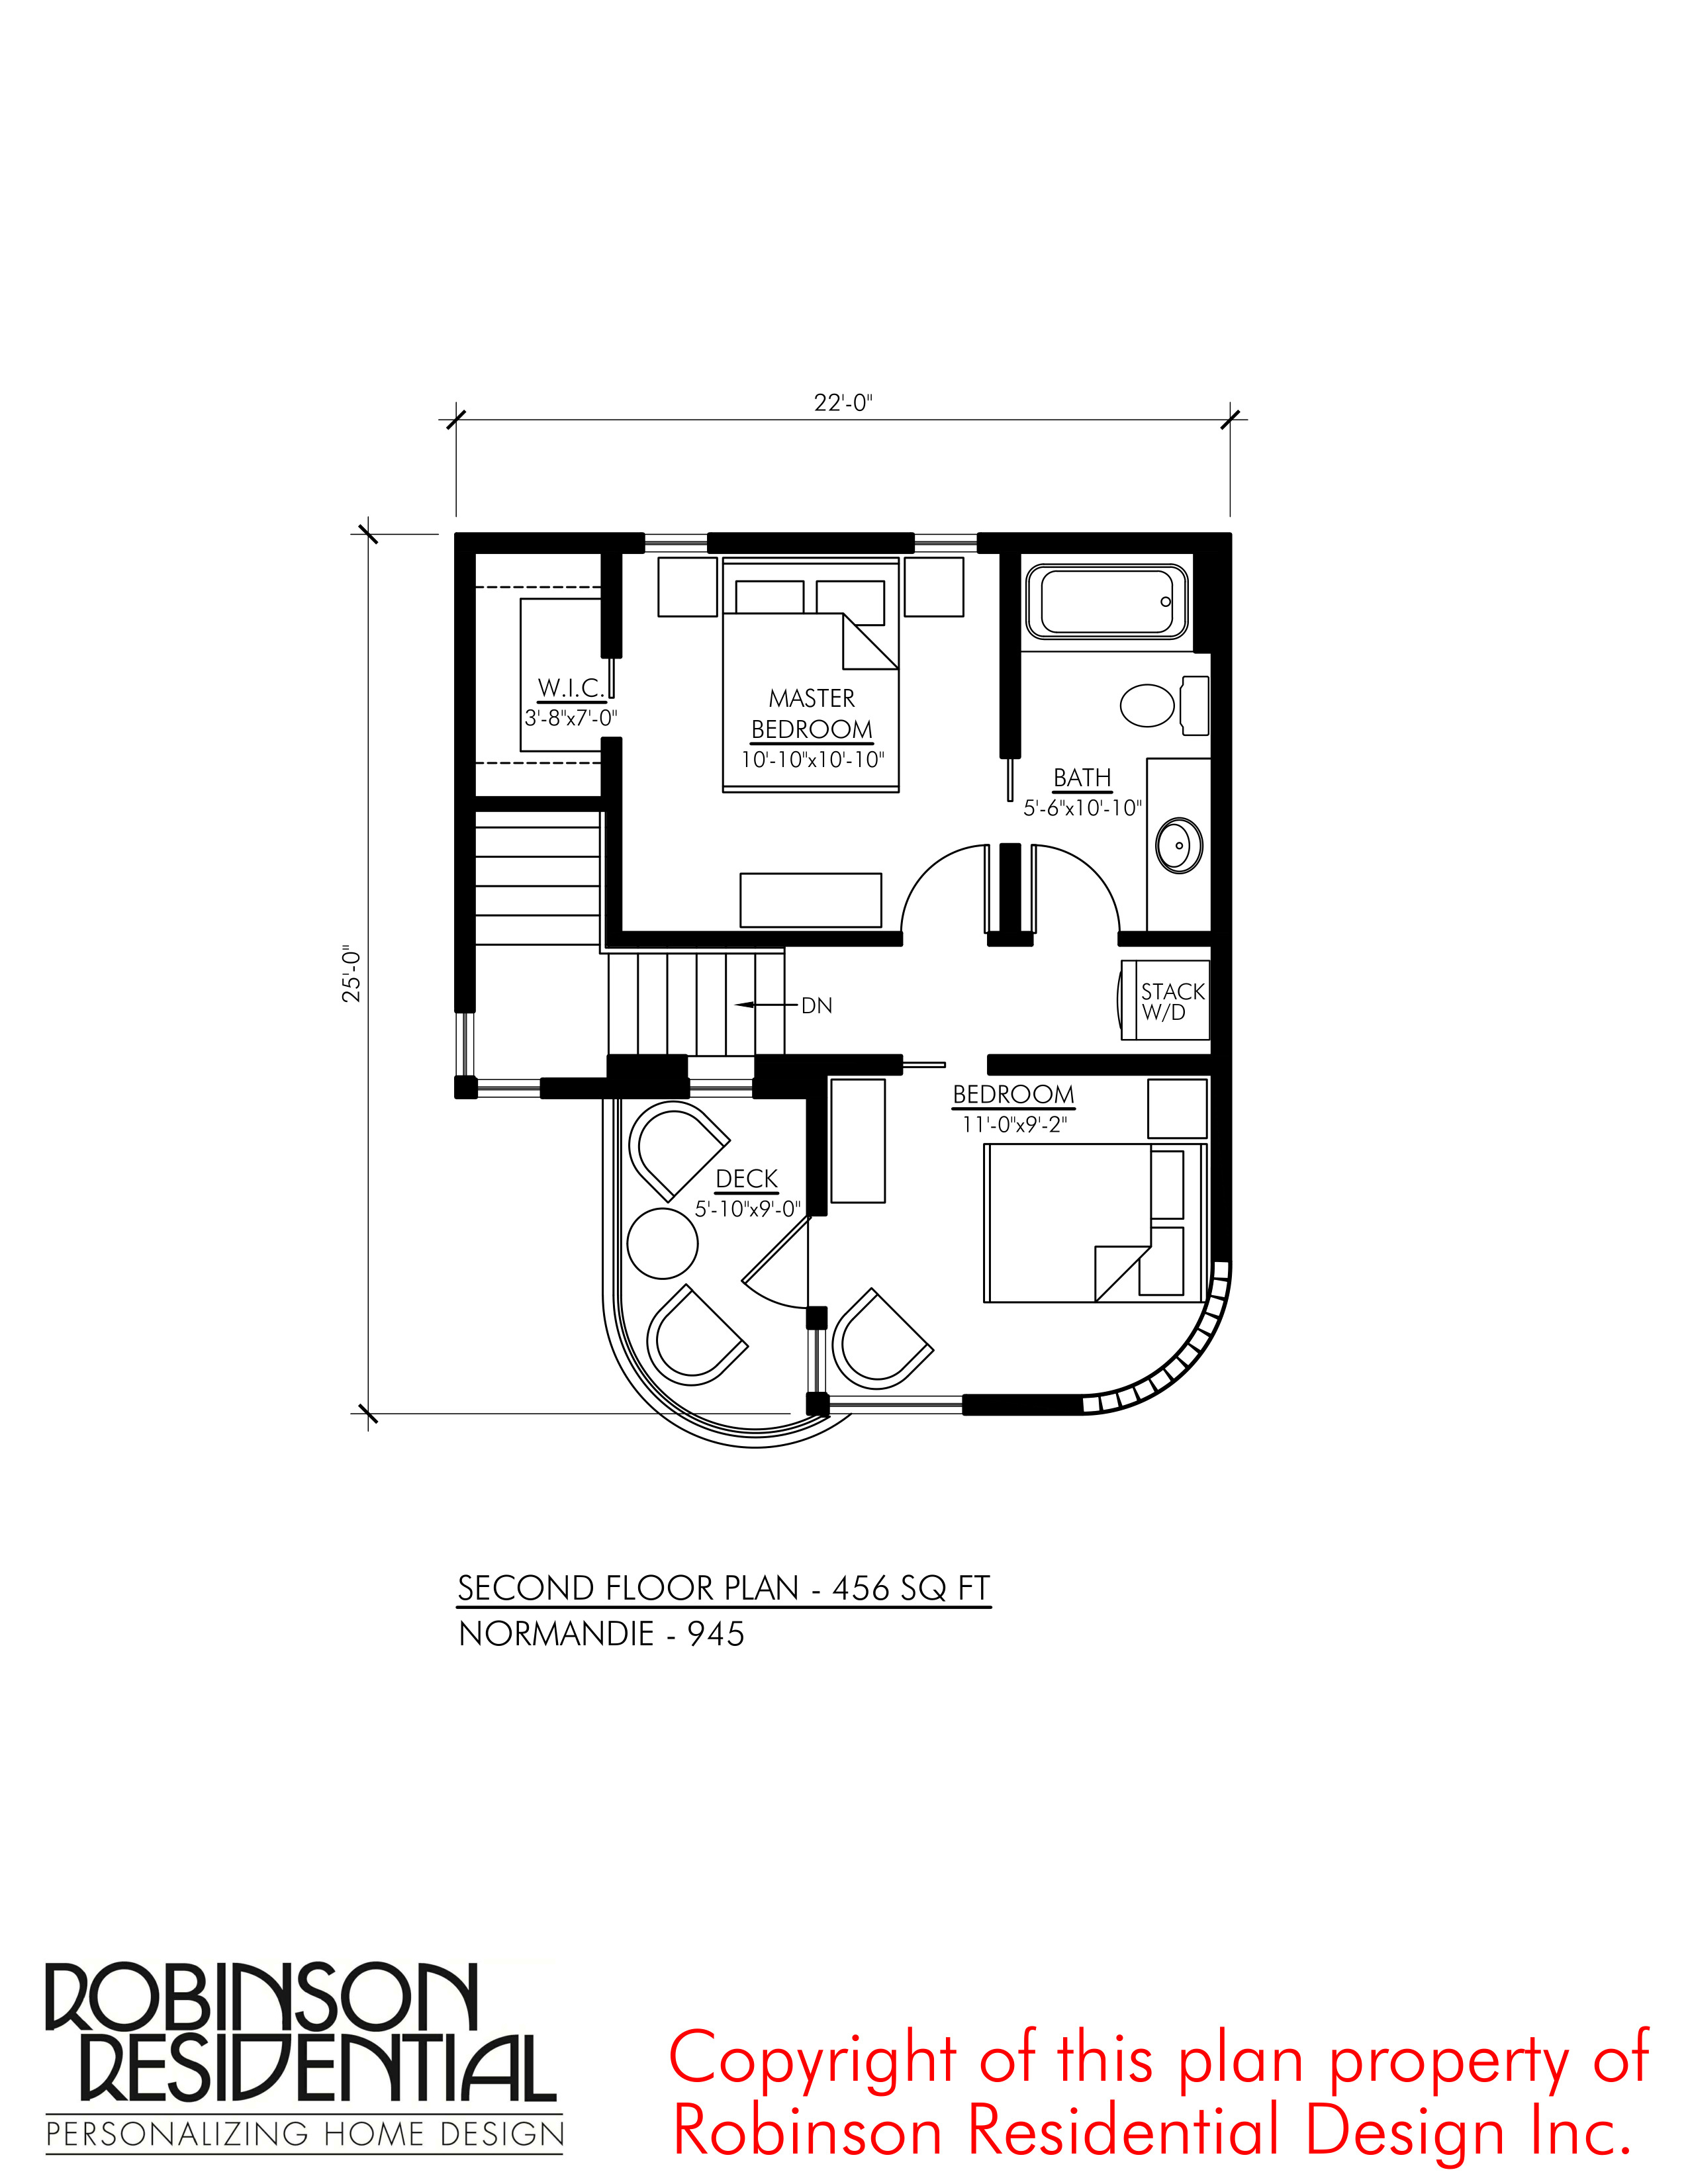 House Plans Small Homes Luxury Contemporary norman 945